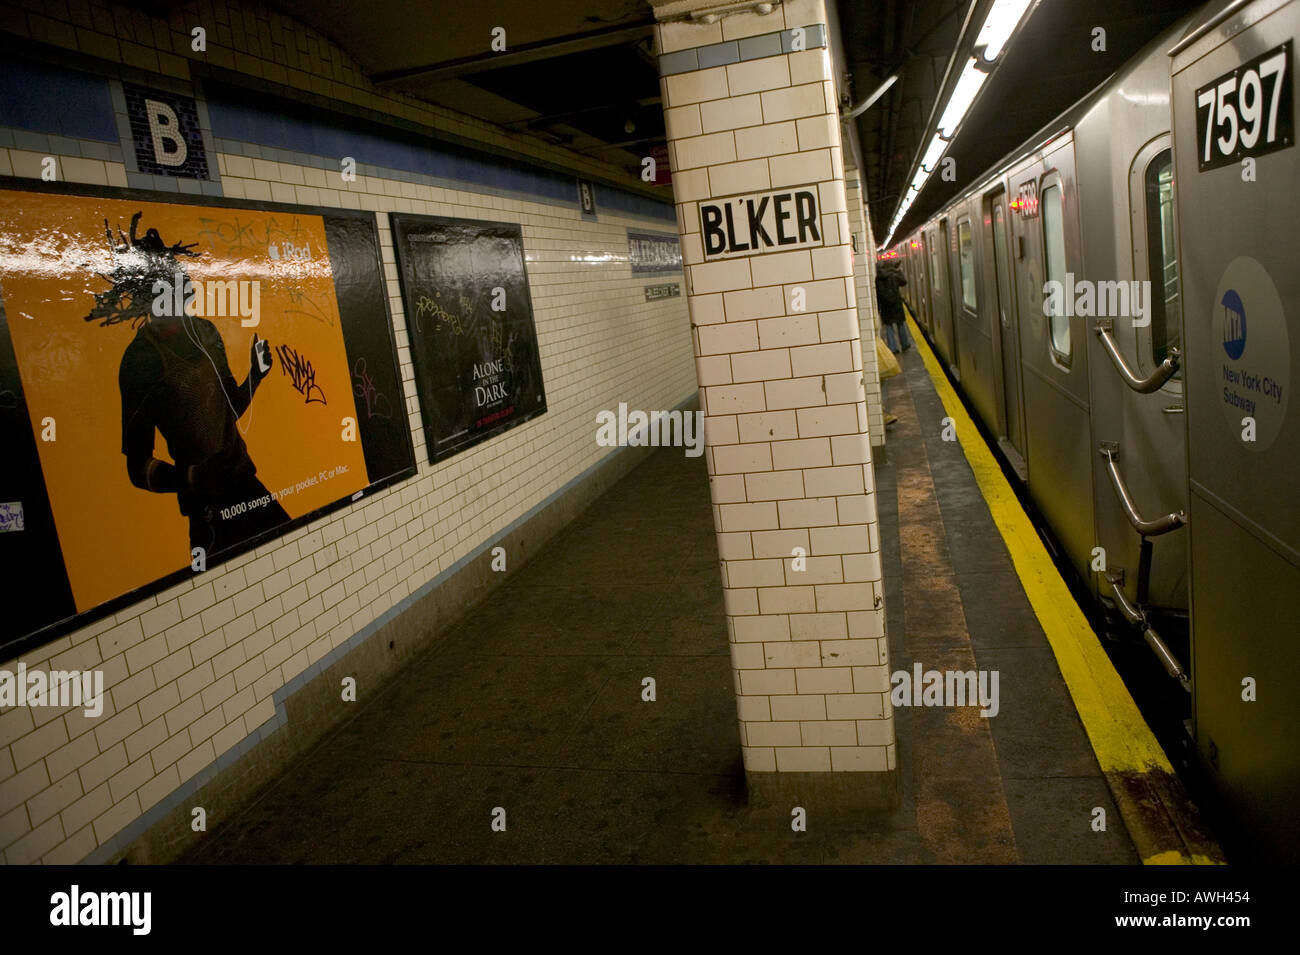 Apple iPod advertising in a subway station in New York City USA January 2005 - Stock Image